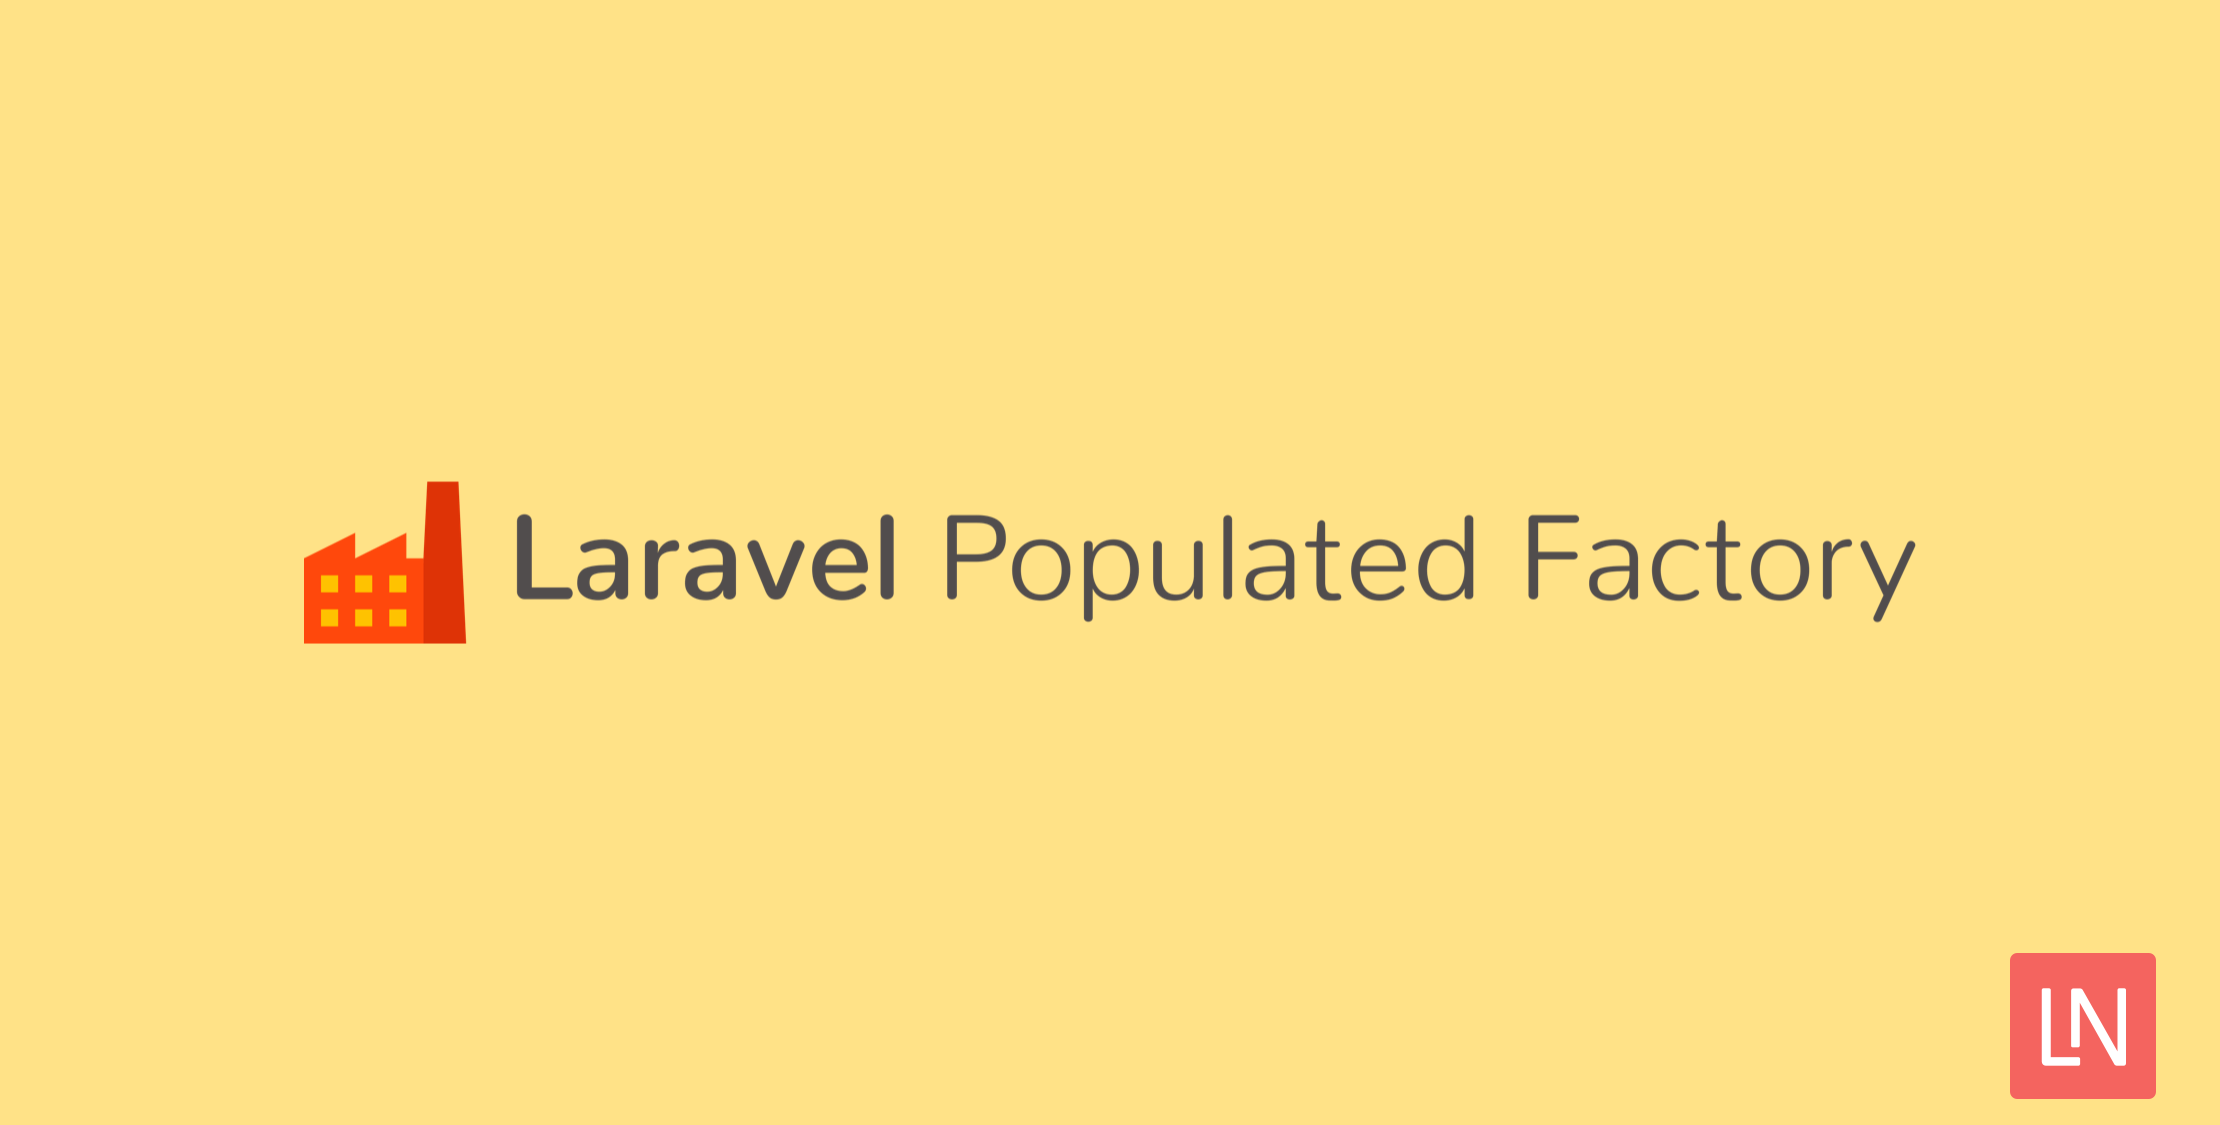 laravel-populated-factory-featured.png